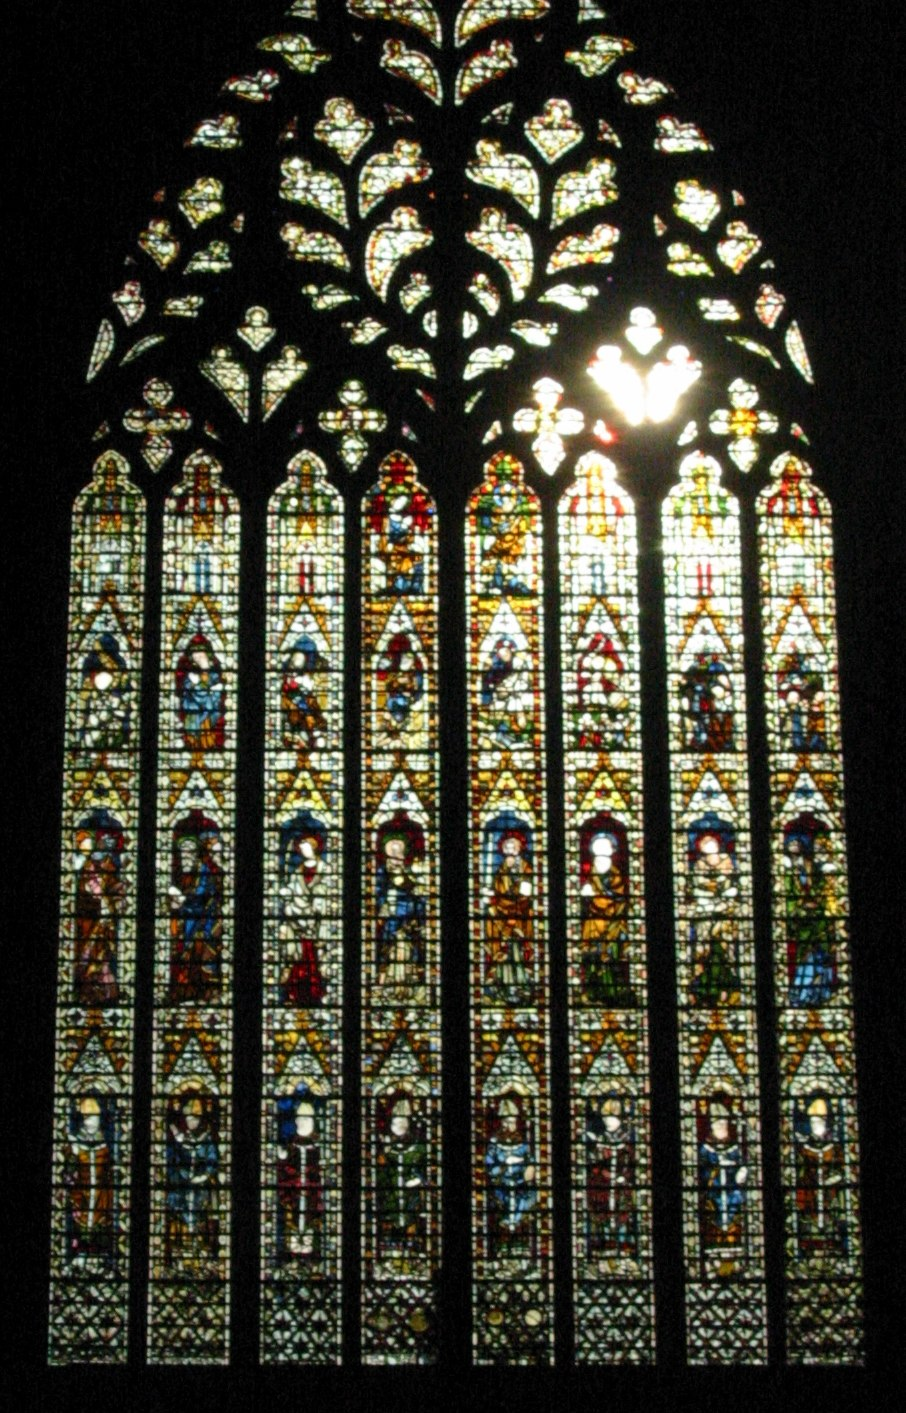 Architecture of the medieval cathedrals of england for West window york minster